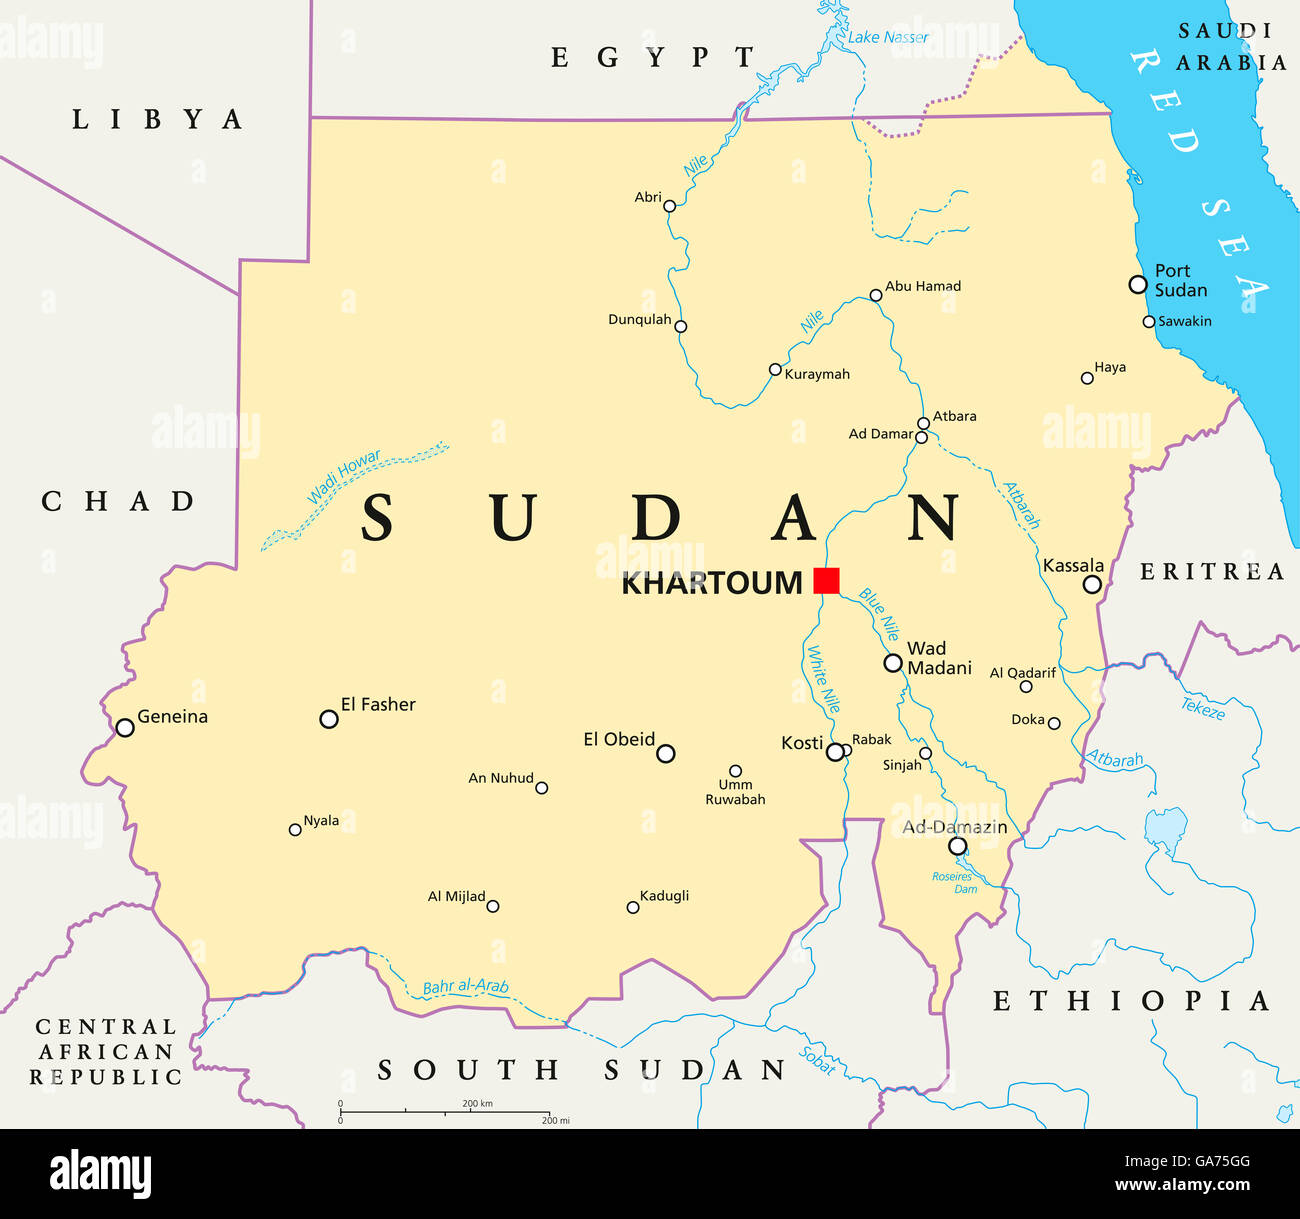 South Sudan Map Stock Photos South Sudan Map Stock Images Alamy - Republic of the sudan map